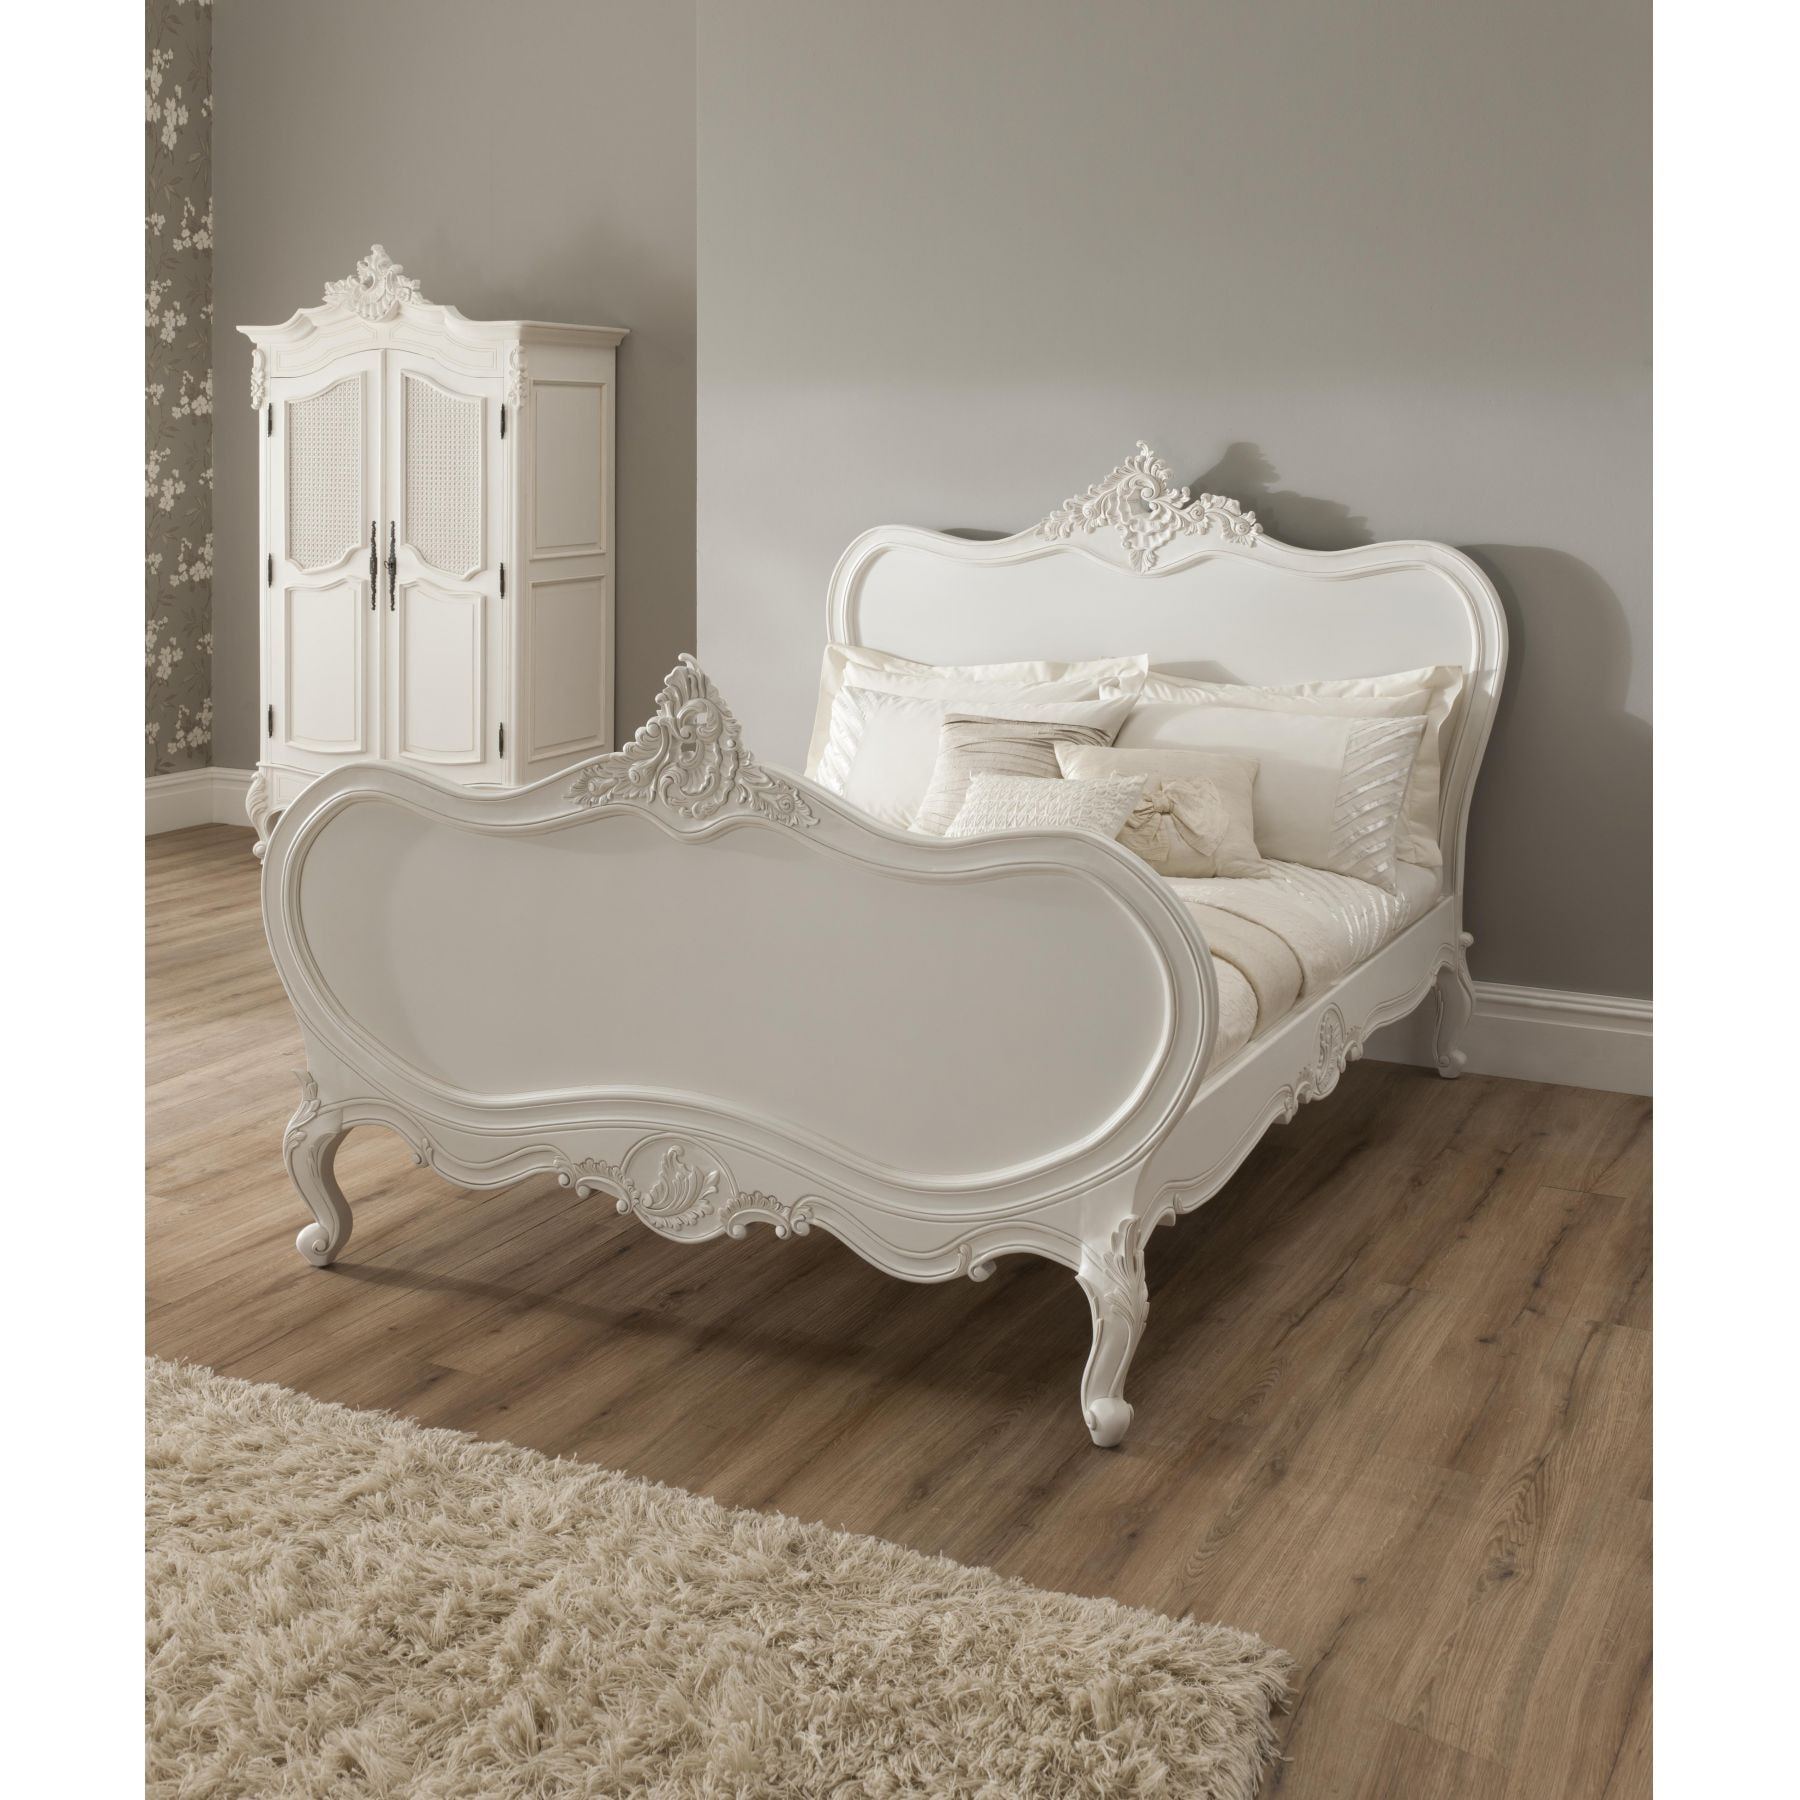 La Rochelle Bundle Deal  2 Bedroom From Homesdirect 365 UK. White French Bedroom Furniture Uk   Modrox com